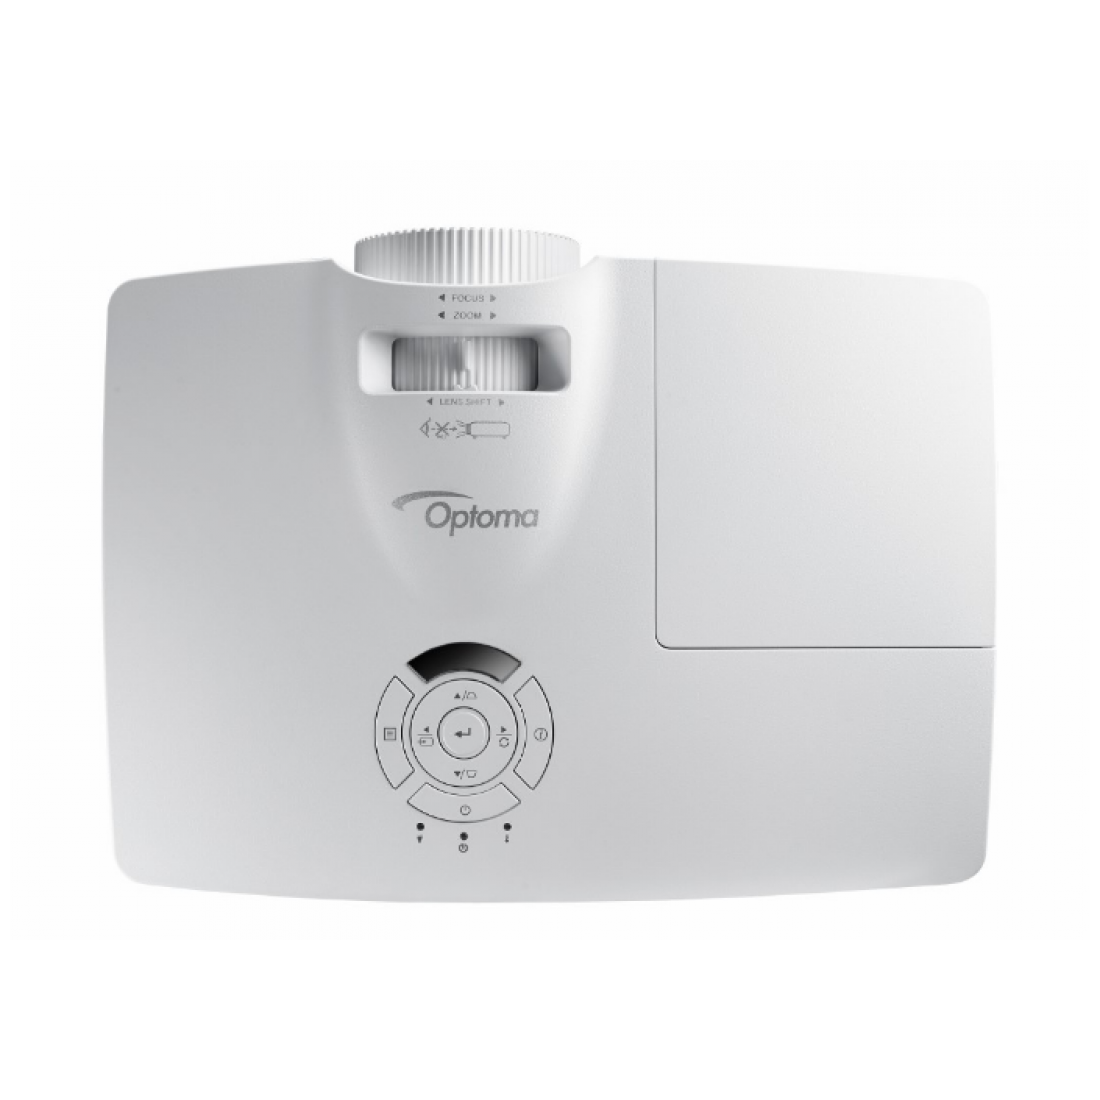 Optoma projector Drivers download